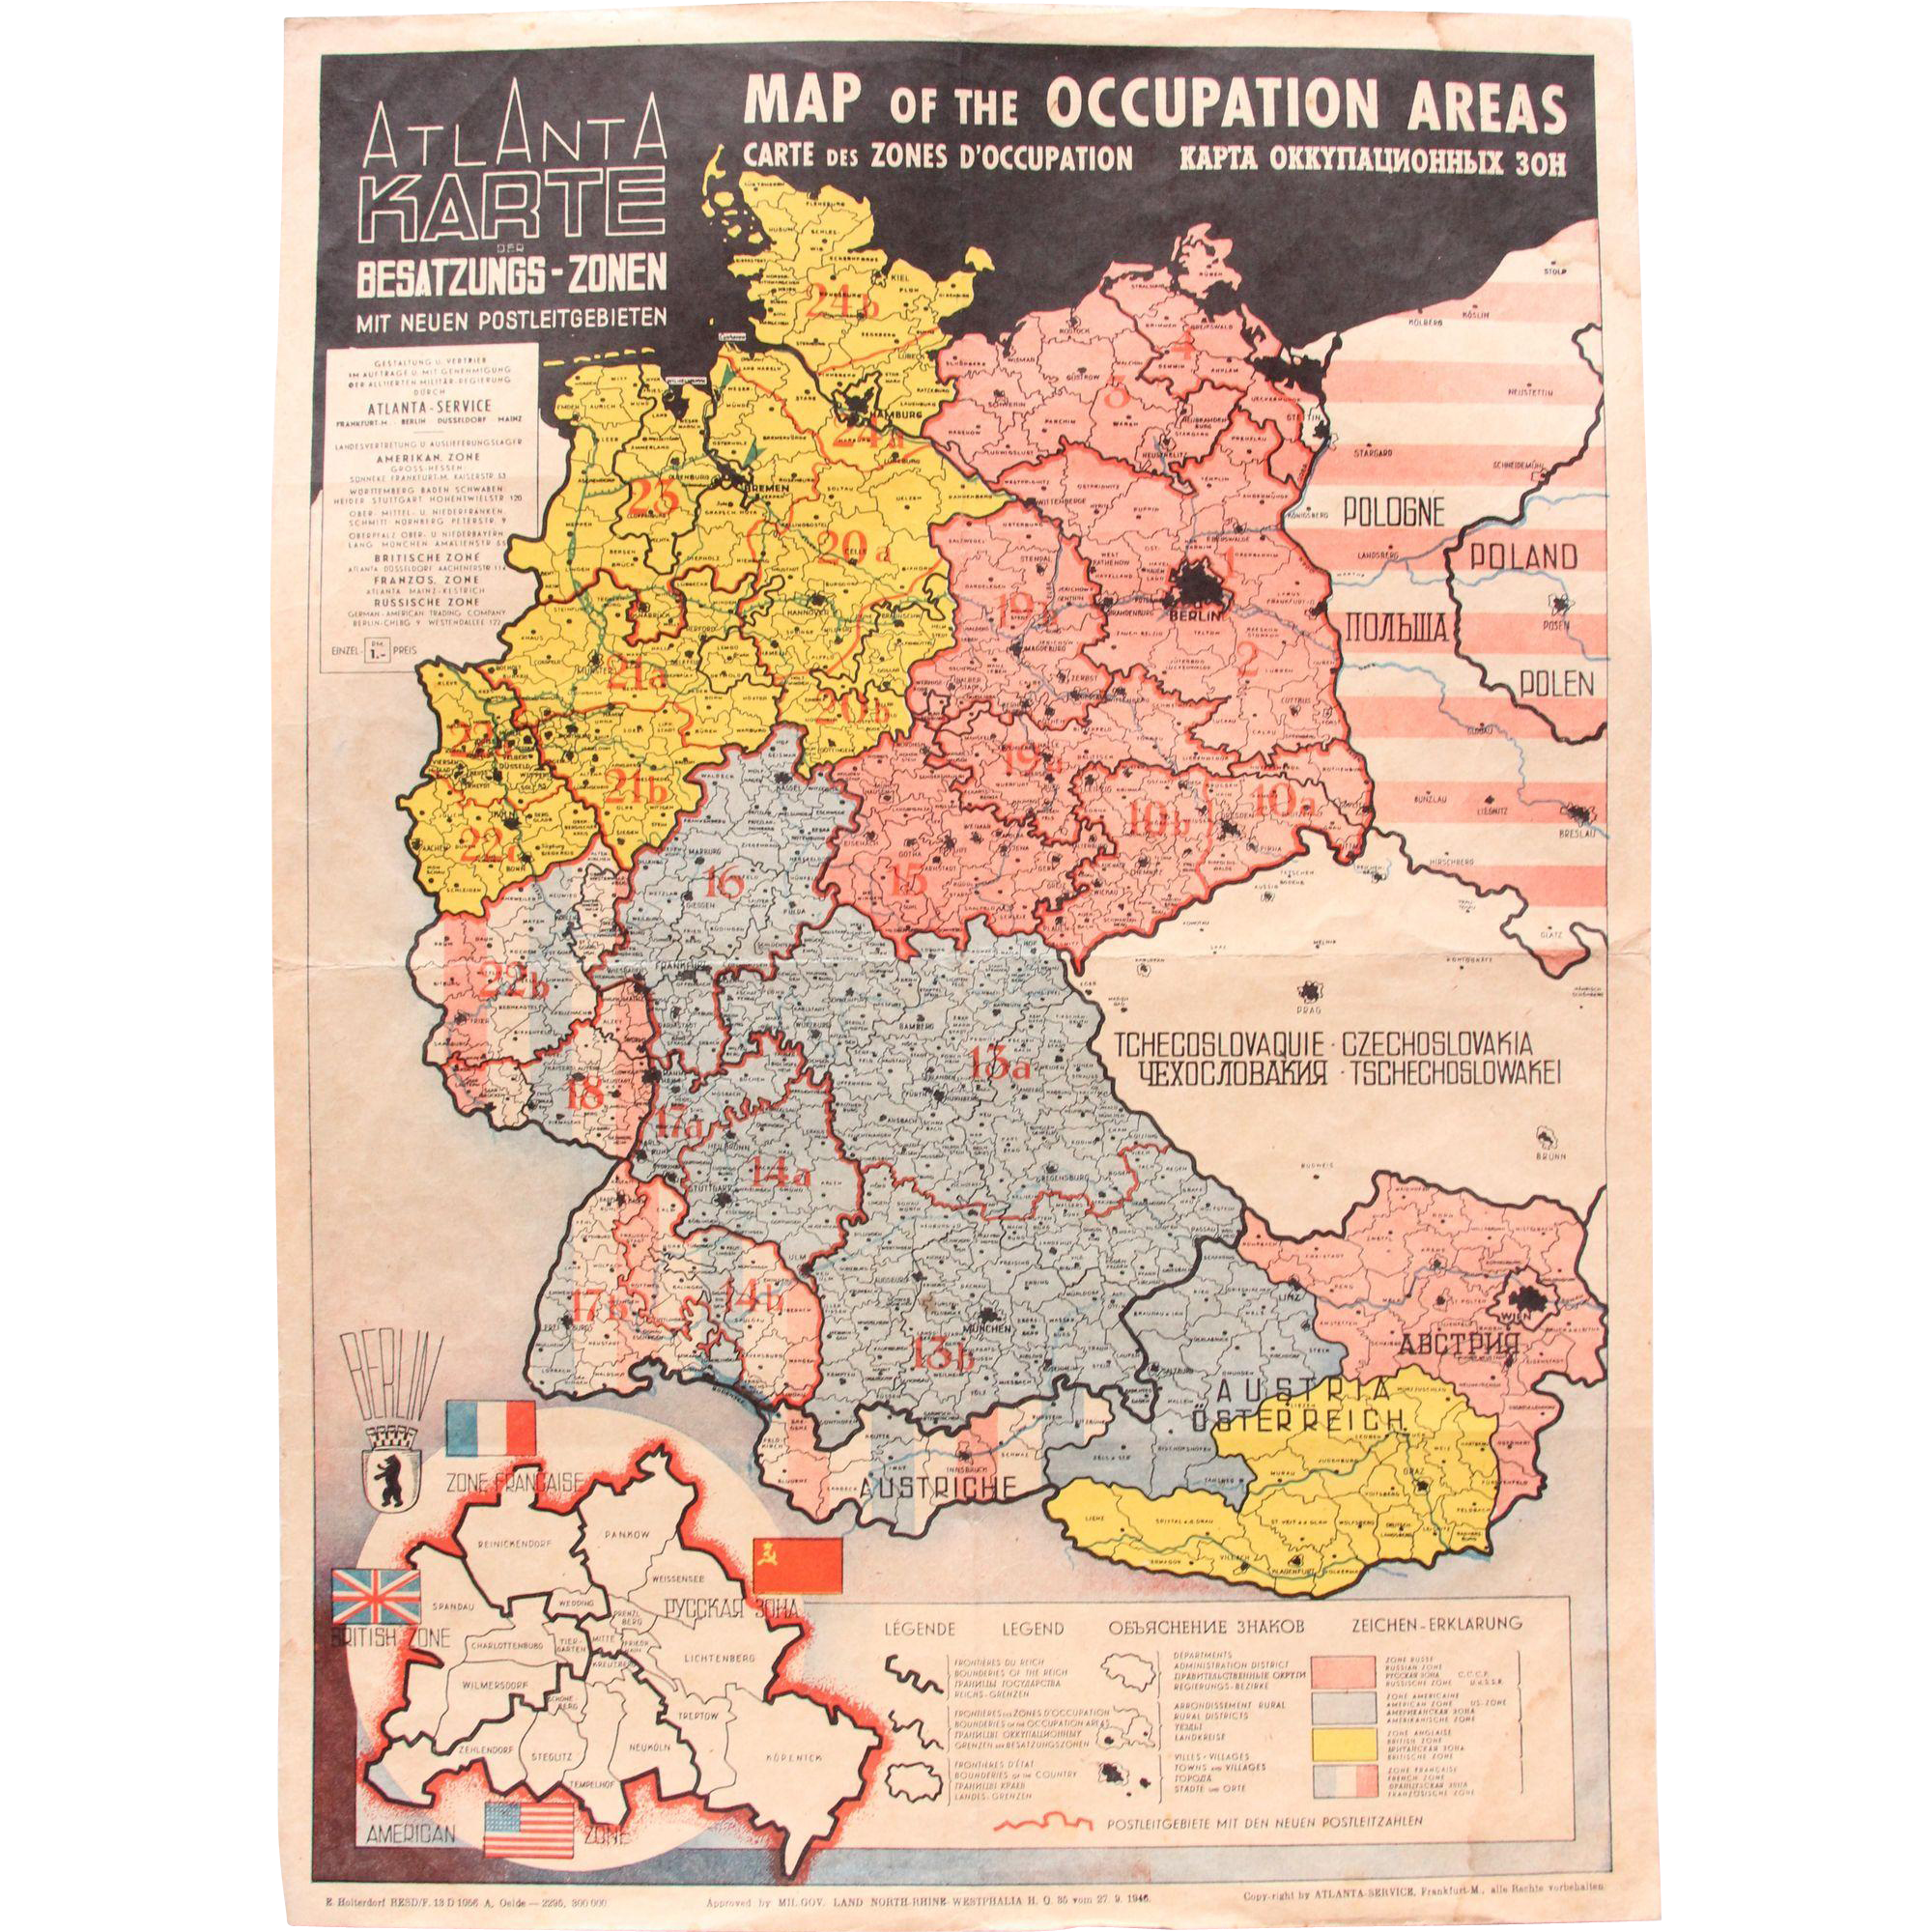 Germany Map After Ww2.1946 Map Of The Occupied Areas Germany Map After Ww2 Atlanta